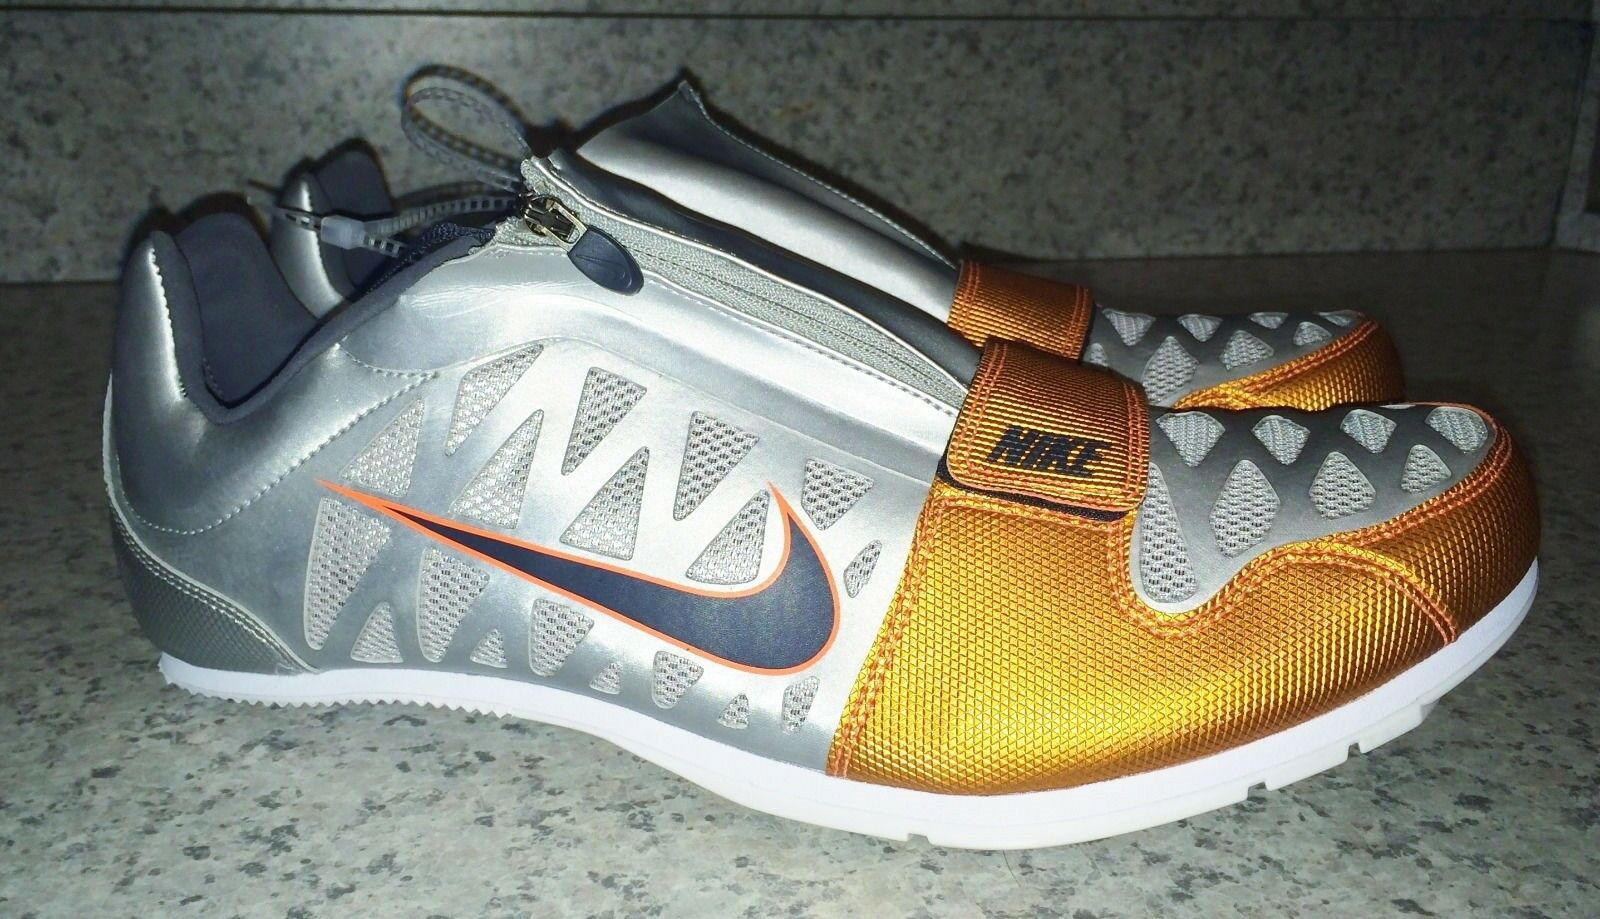 NIKE Zoom LJ 4 Long Jump Jump Jump Pole Vault Track shoes Silver orange NEW Mens 12.5 15 6910a1